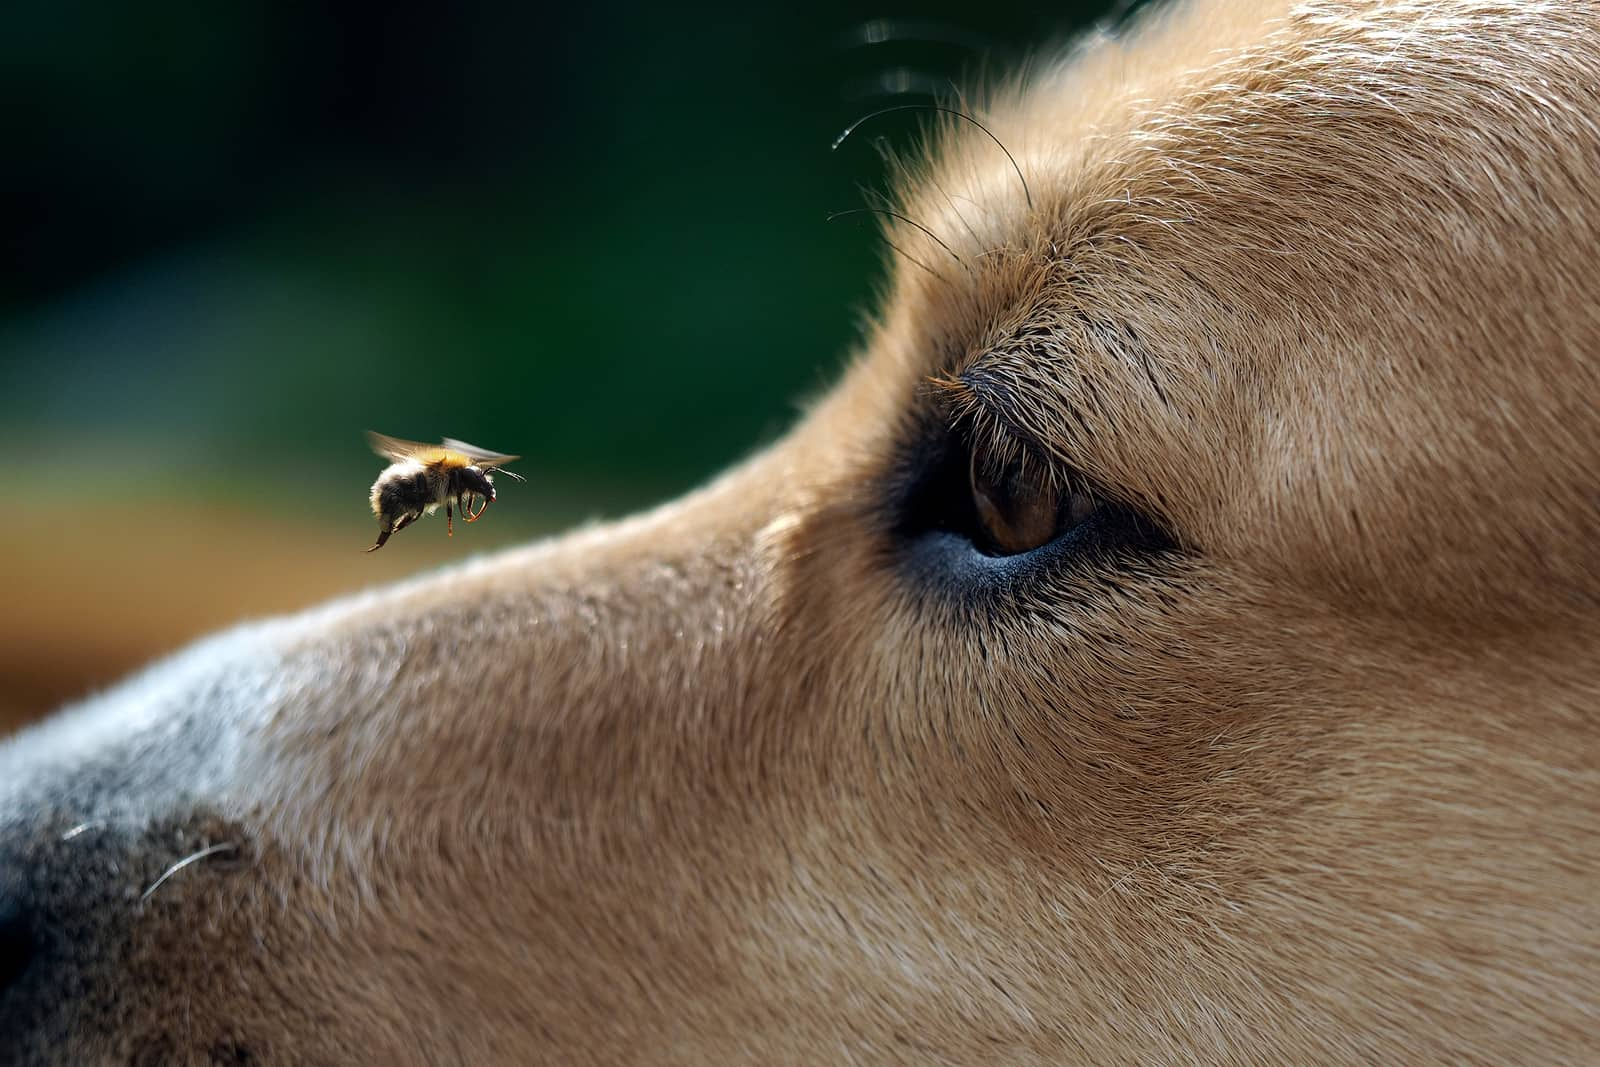 Closeup of a dog watching a bee land on his nose